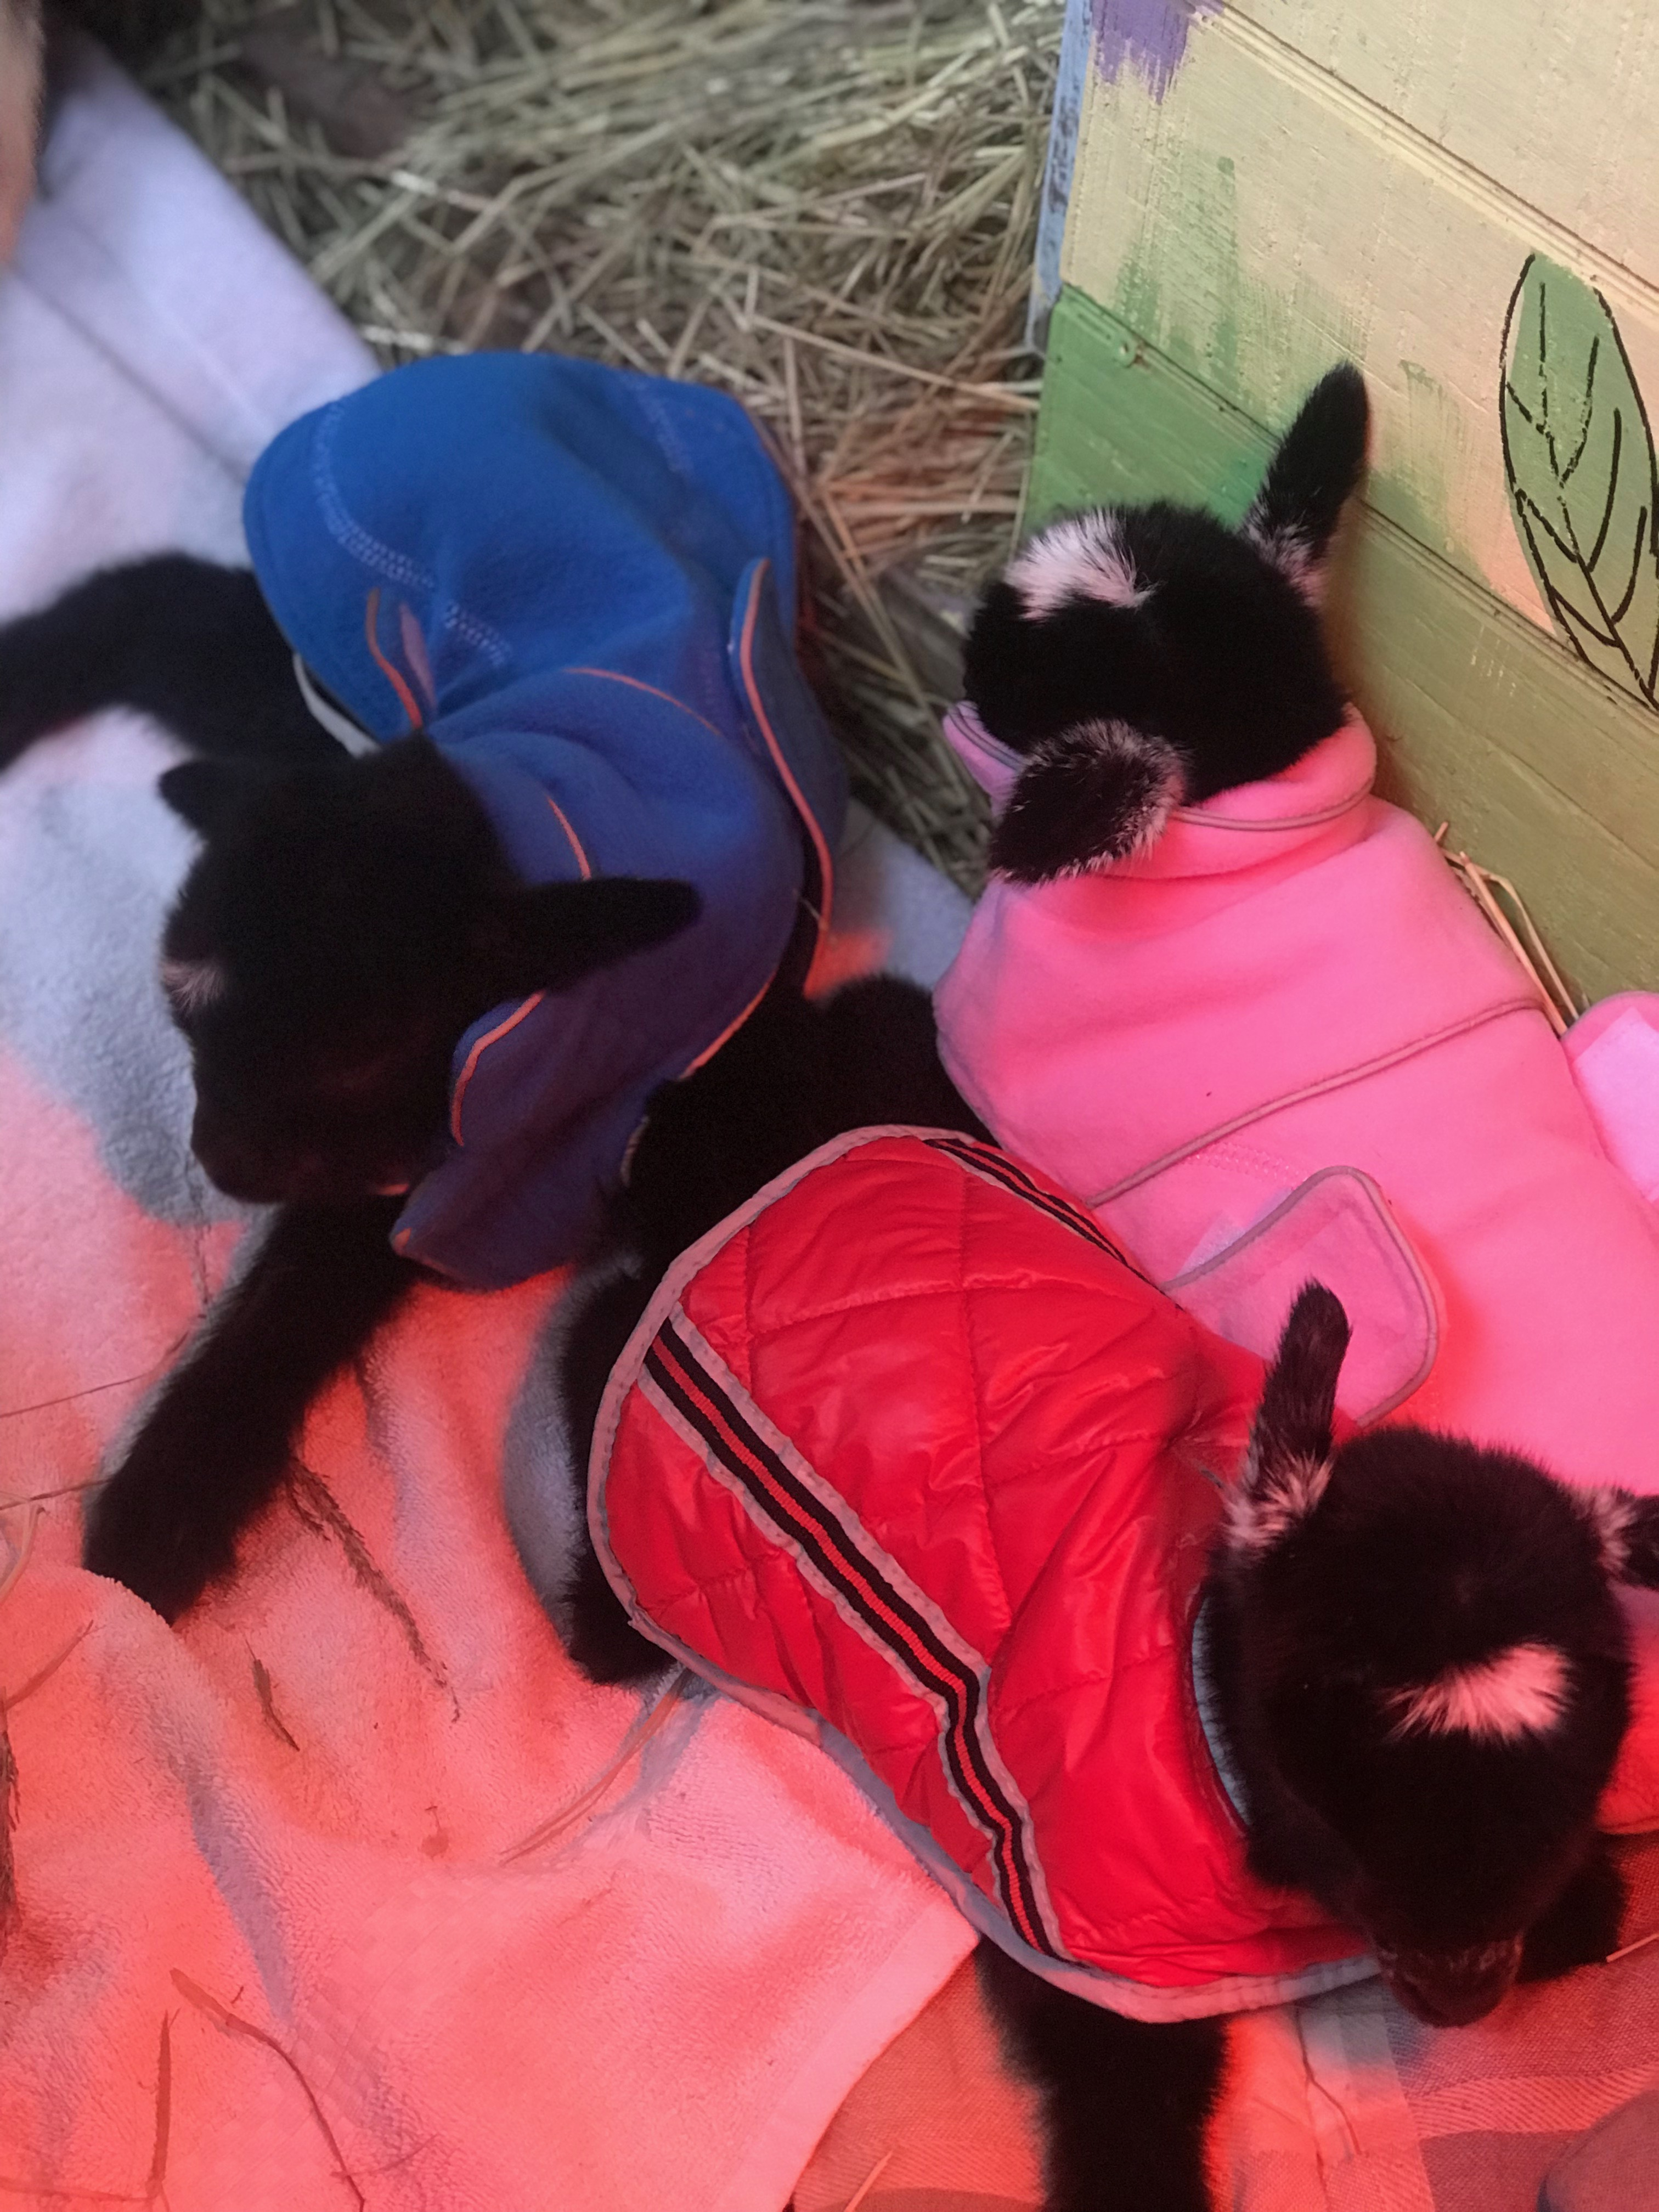 <div class='meta'><div class='origin-logo' data-origin='none'></div><span class='caption-text' data-credit='Credit: Winterpast Farm'>The triplets getting all cozy in their coats</span></div>